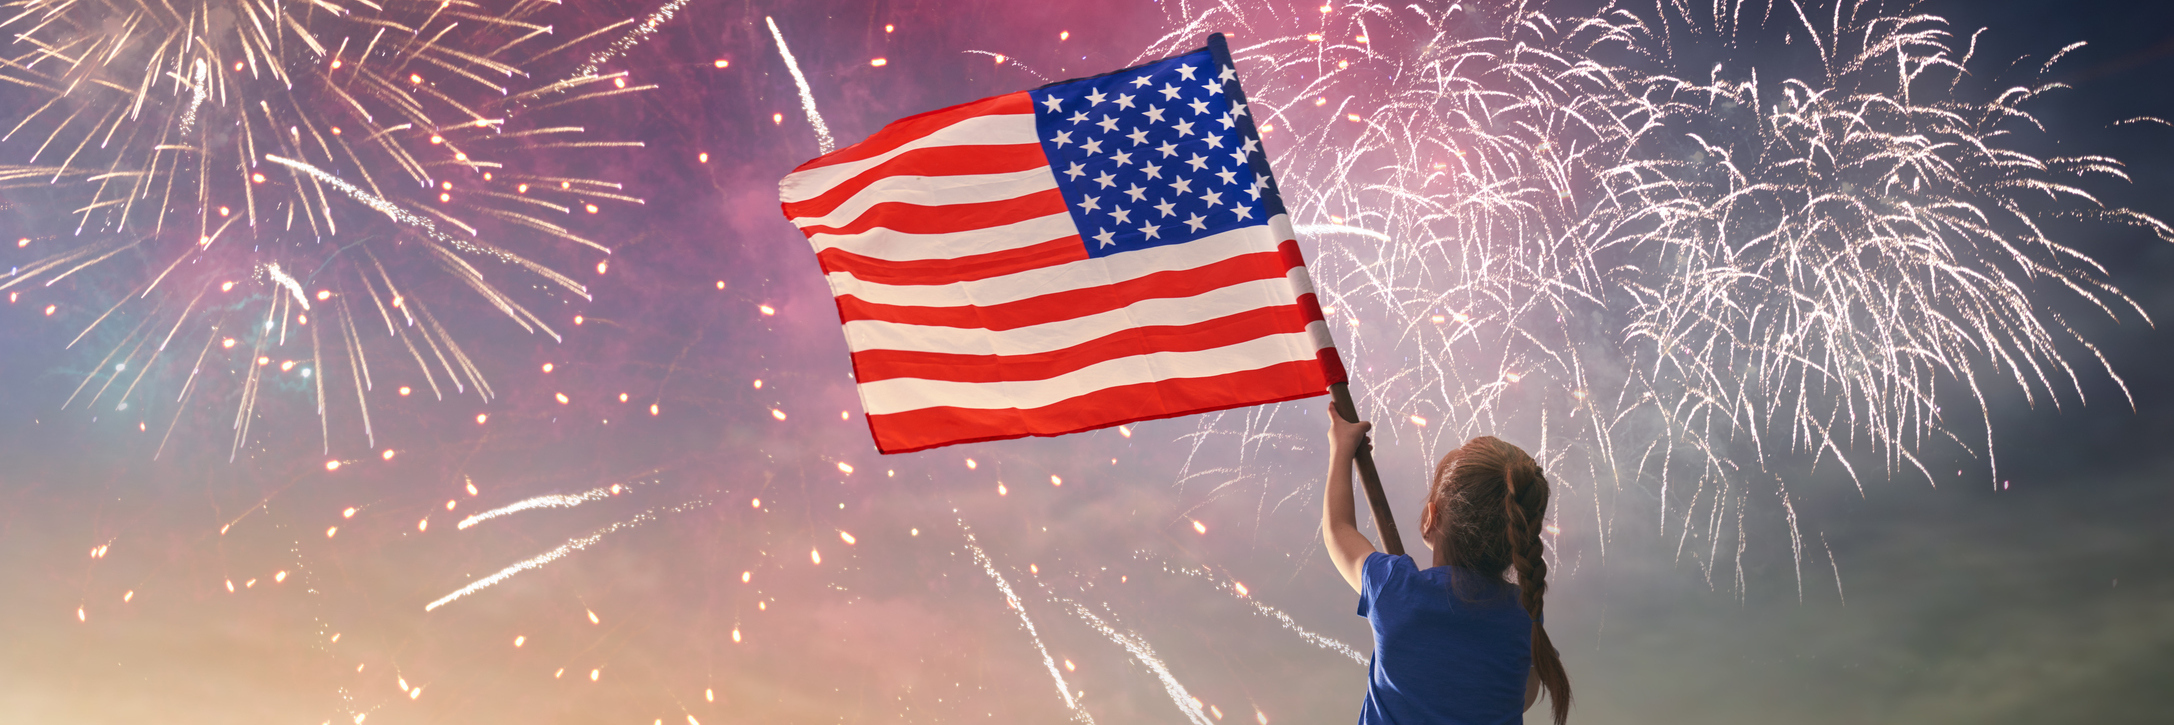 young girl waving an american flag in the sky with fireworks